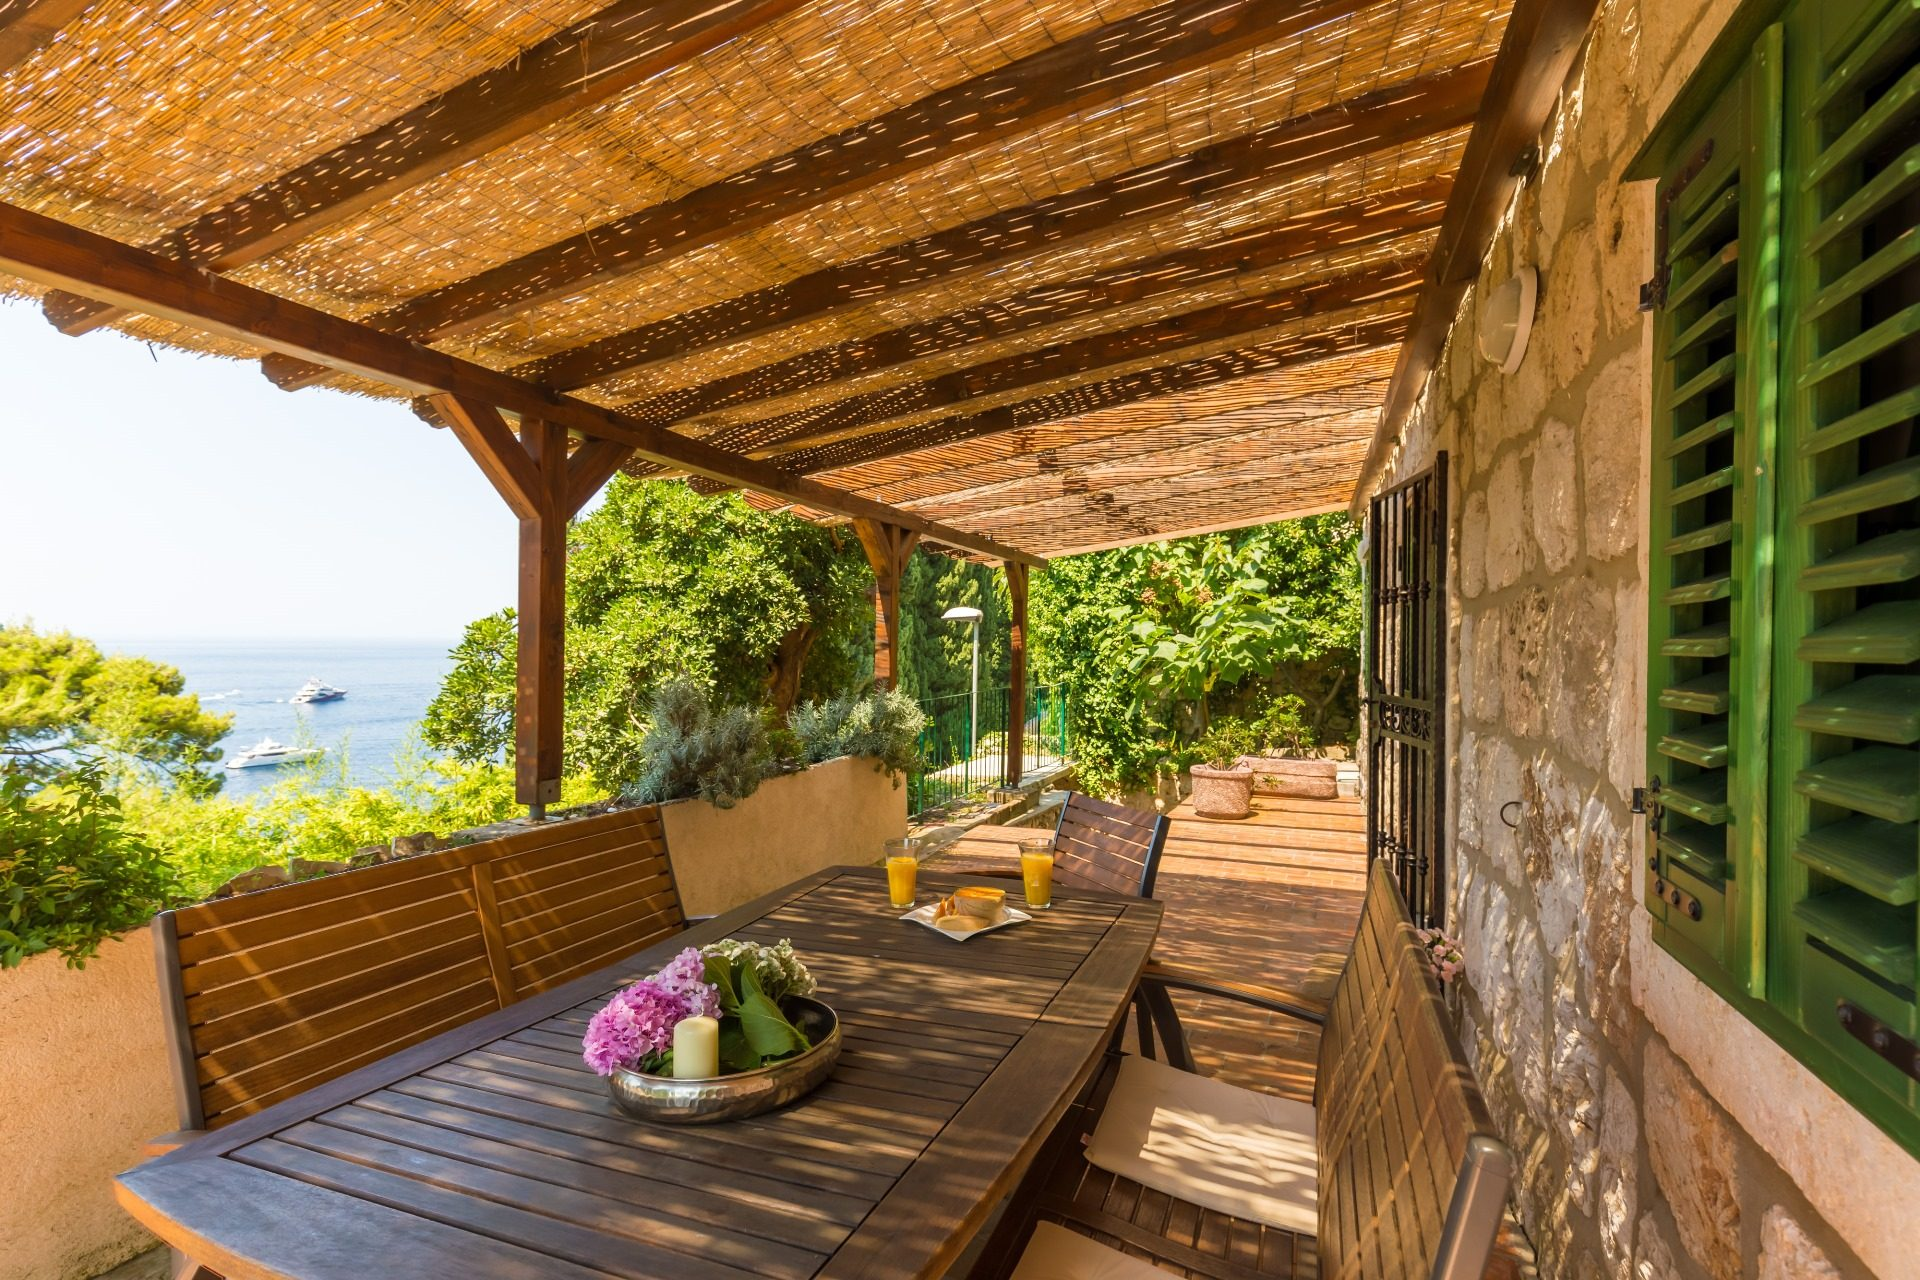 location villa luxe, Croatie, CRODUB 336